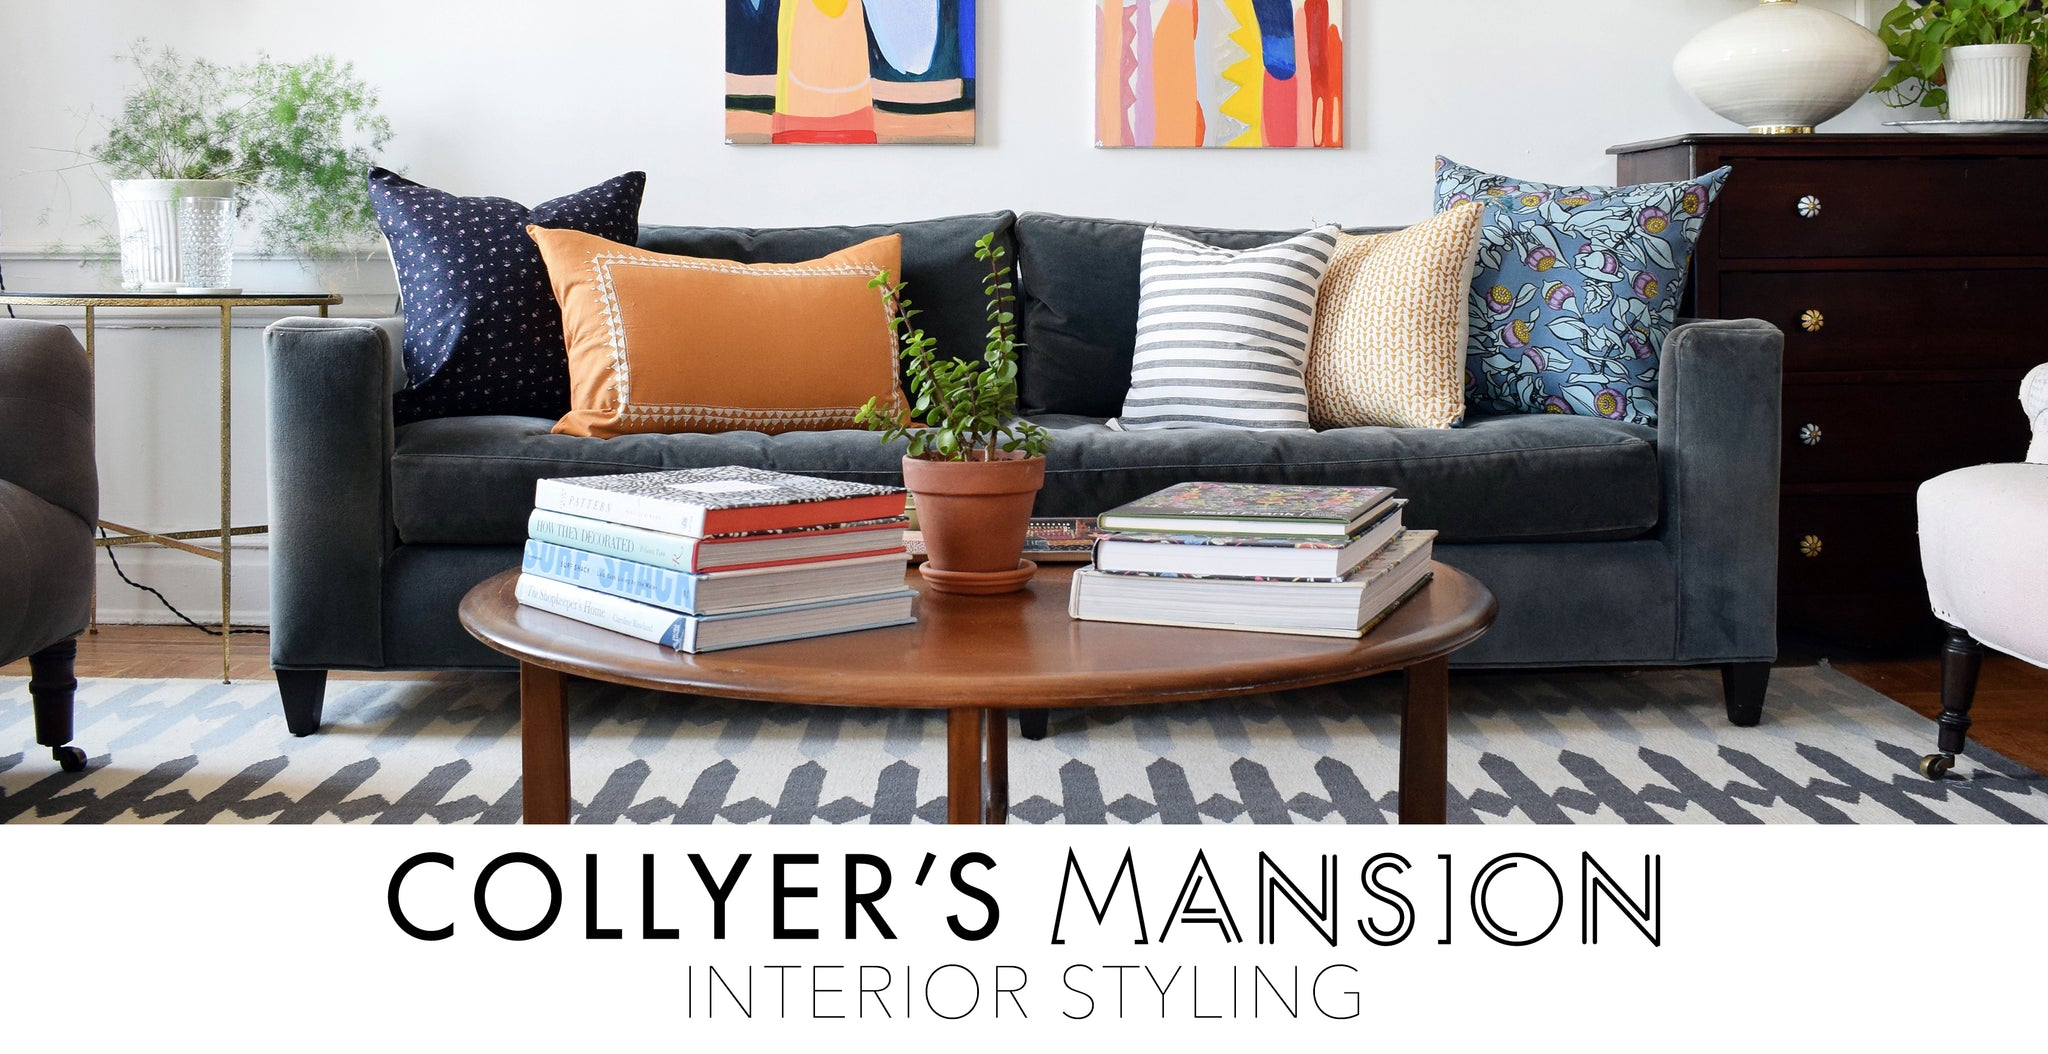 Colorful pillows with print and pattern done by Interior Styling at Collyer's Mansion - Interior Styling Services